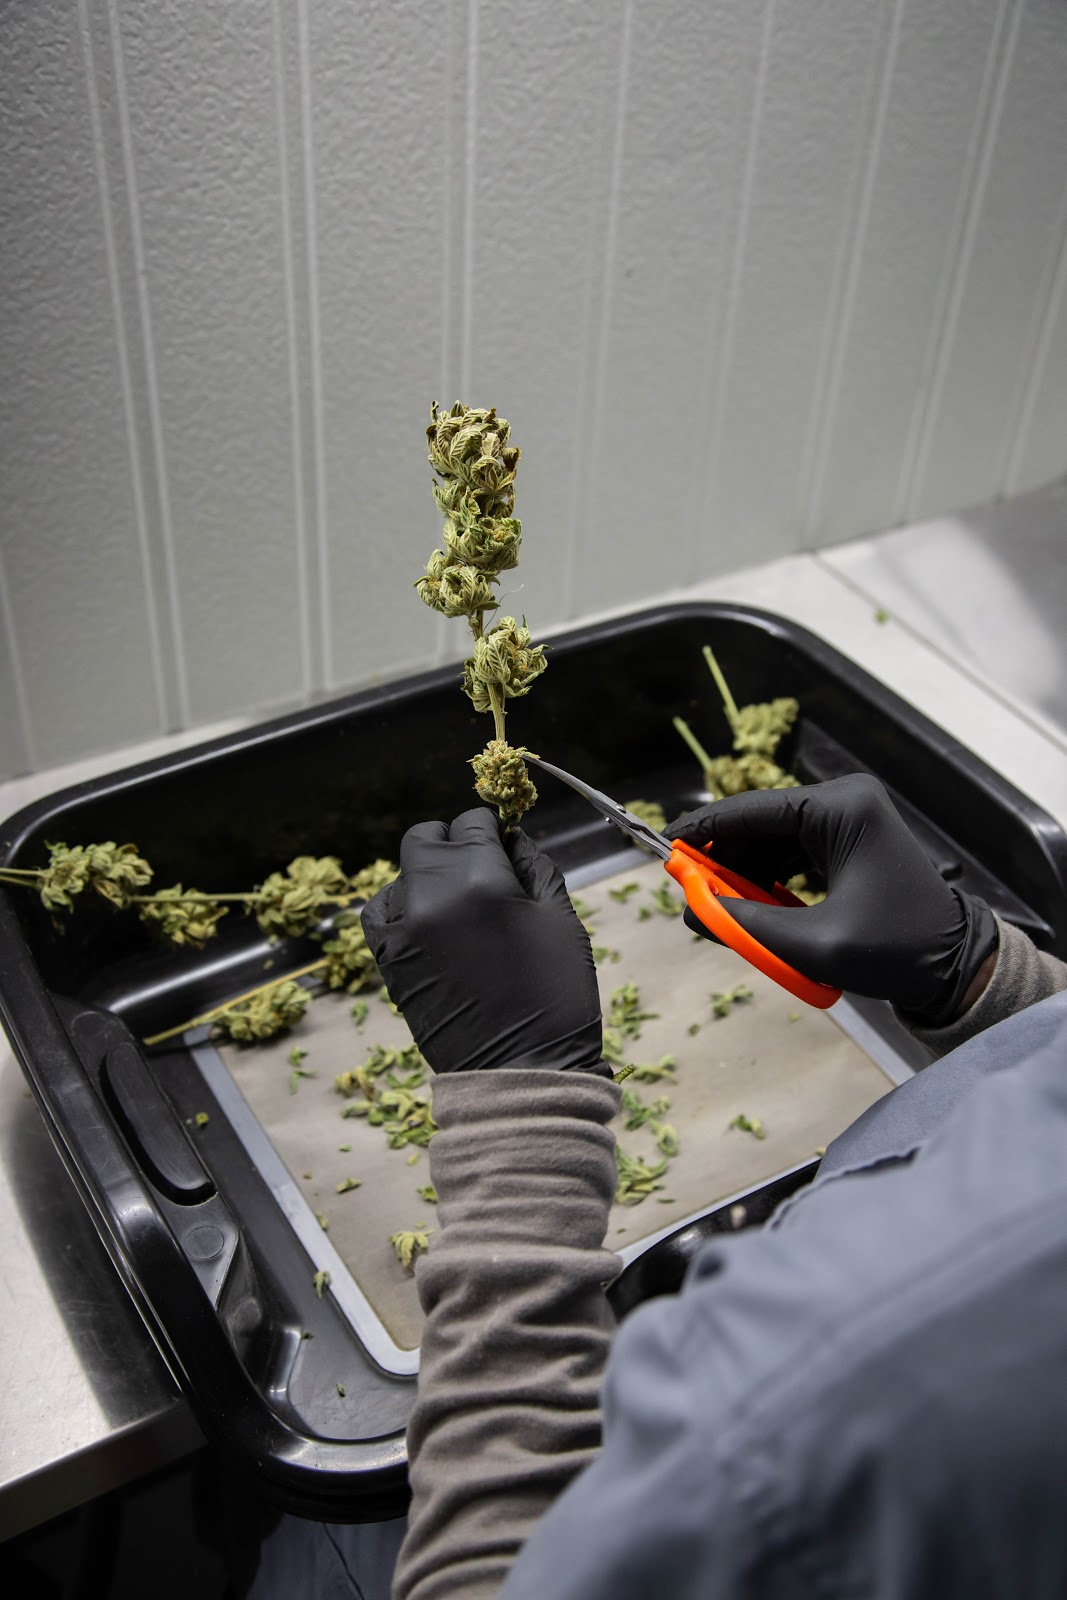 2019_02_06_HandTrimming_Cultivation_Flowering_Harmony_Dispensary_Cannabis_Marijuana_07.jpg